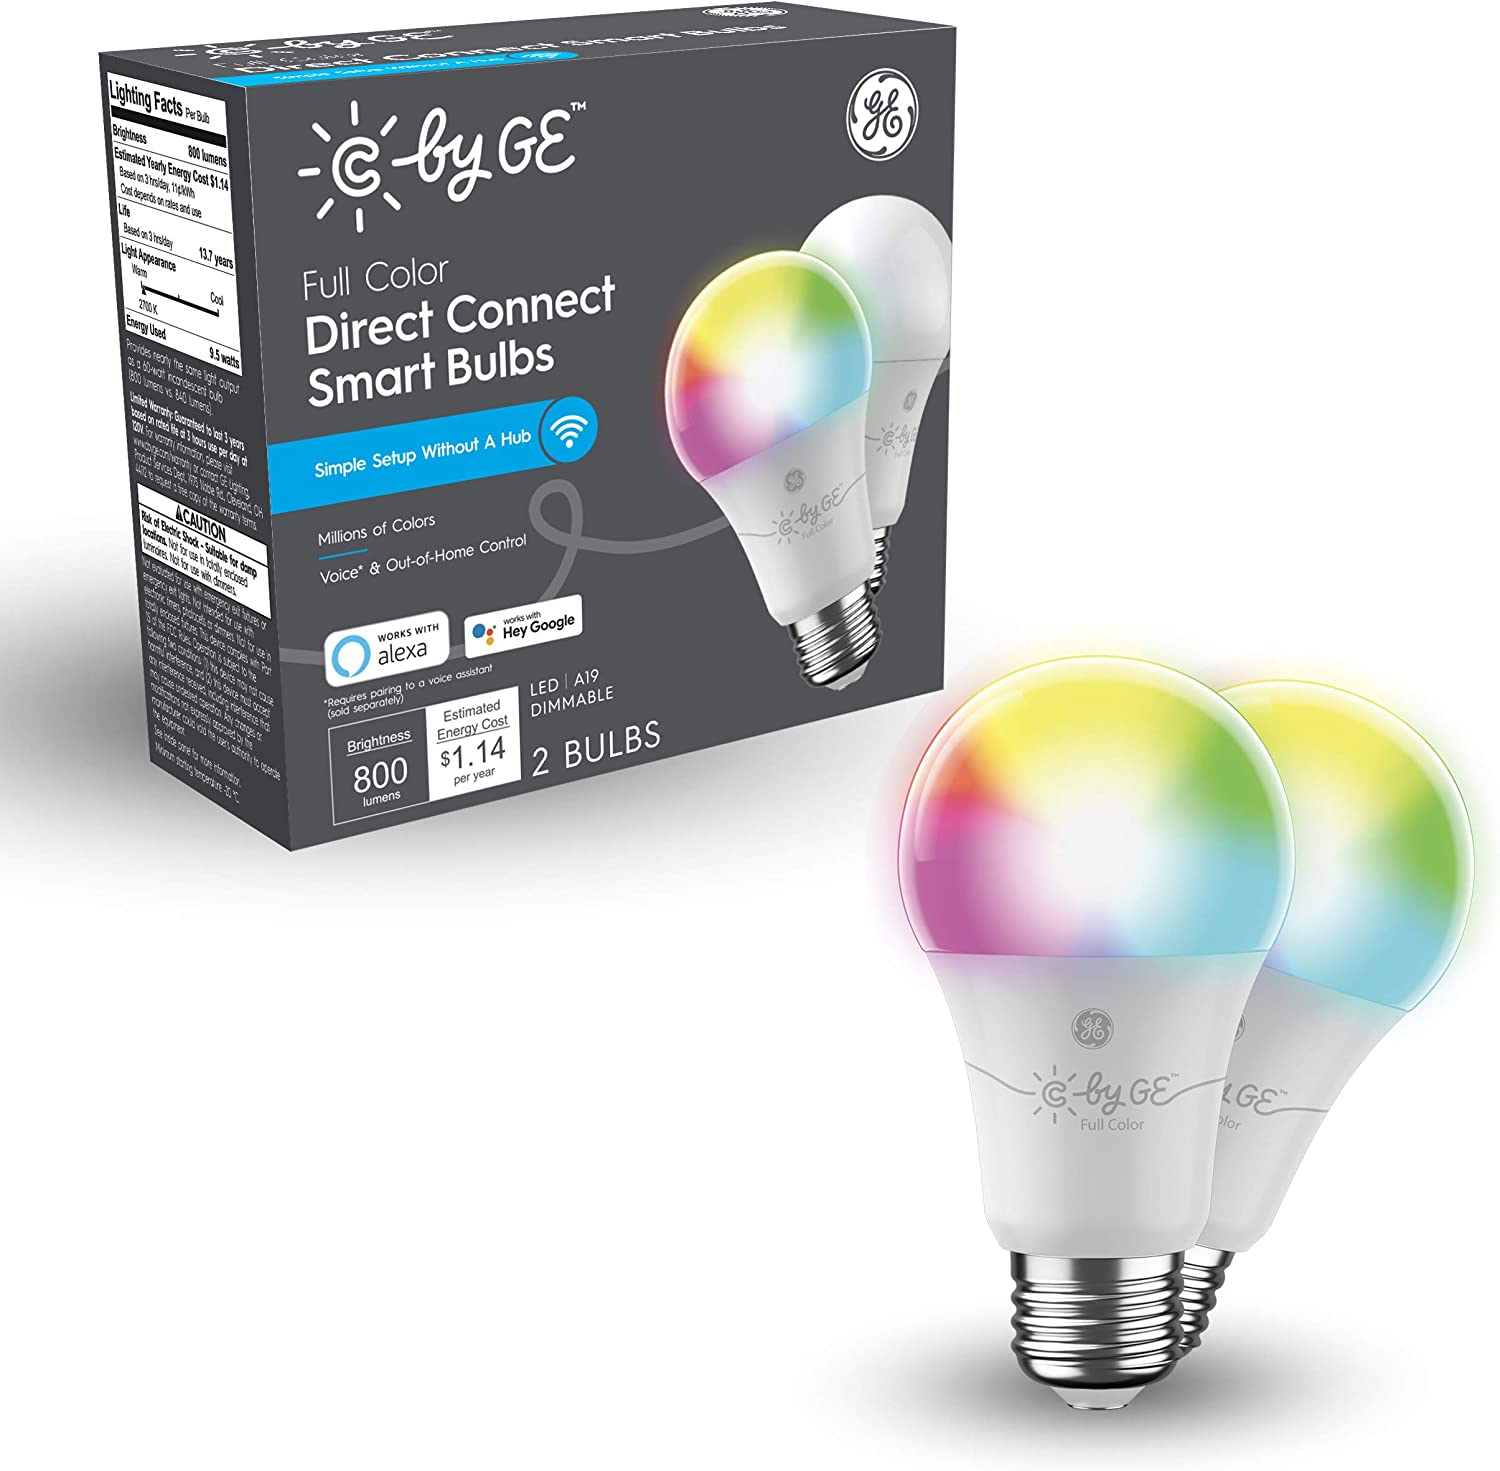 GE Lighting C by Full Color Direct Connect Smart LED Bulbs (2 A19 Color Changing Light Bulbs), 60W Replacement, 2-Pack, Smart Light Bulb Works with Alexa + Google Home Without Hub (93128982)